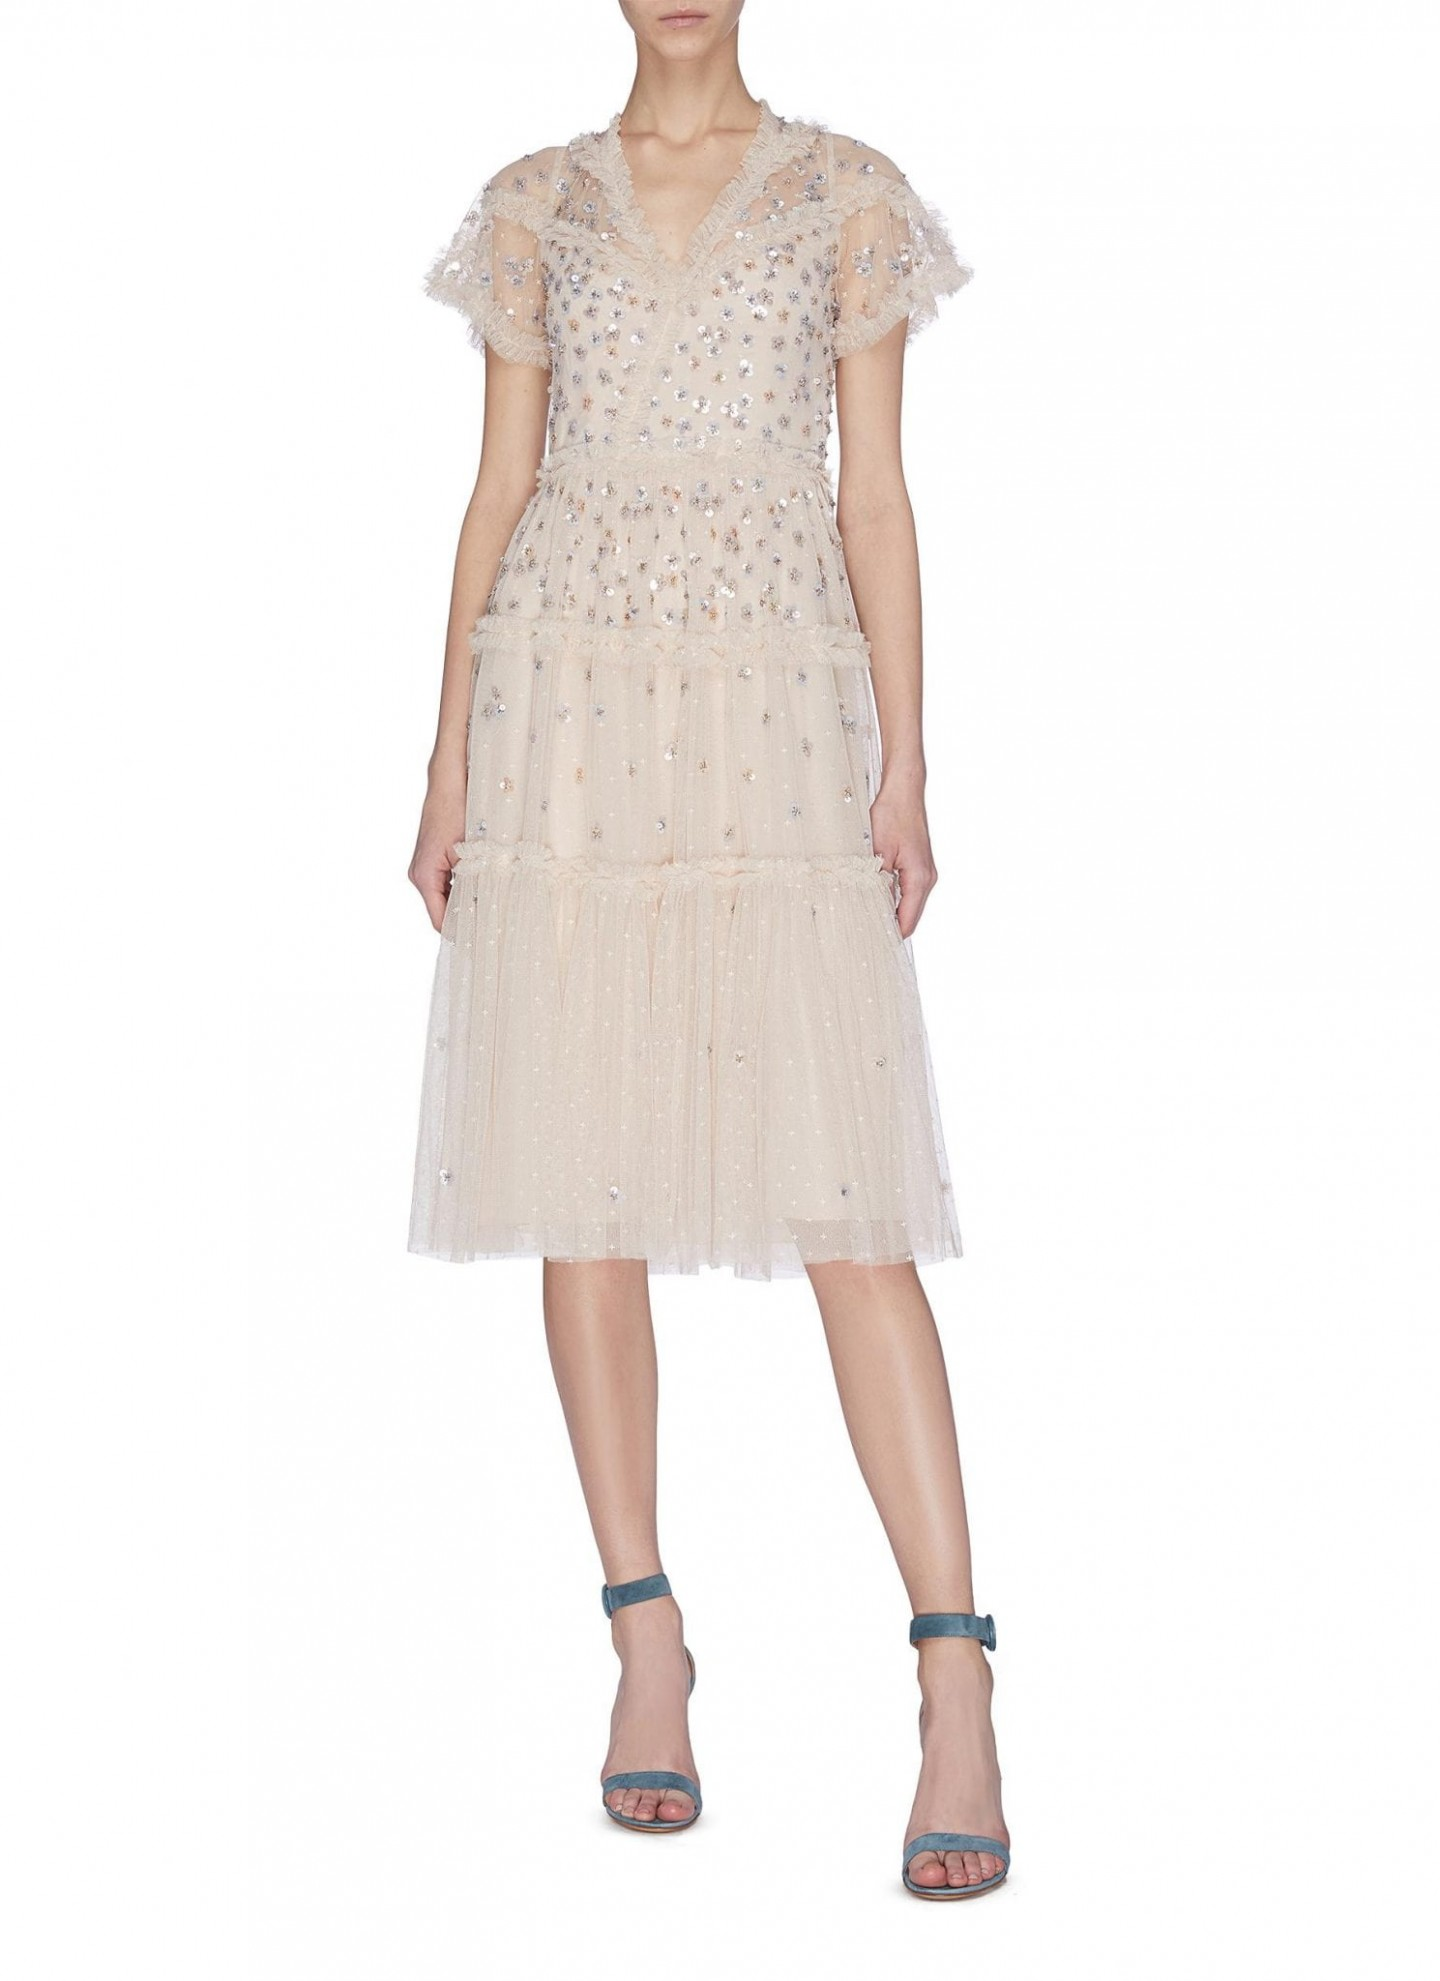 NEEDLE & THREAD 'Glimmer' Sequin Embroidered Ruffle Dress